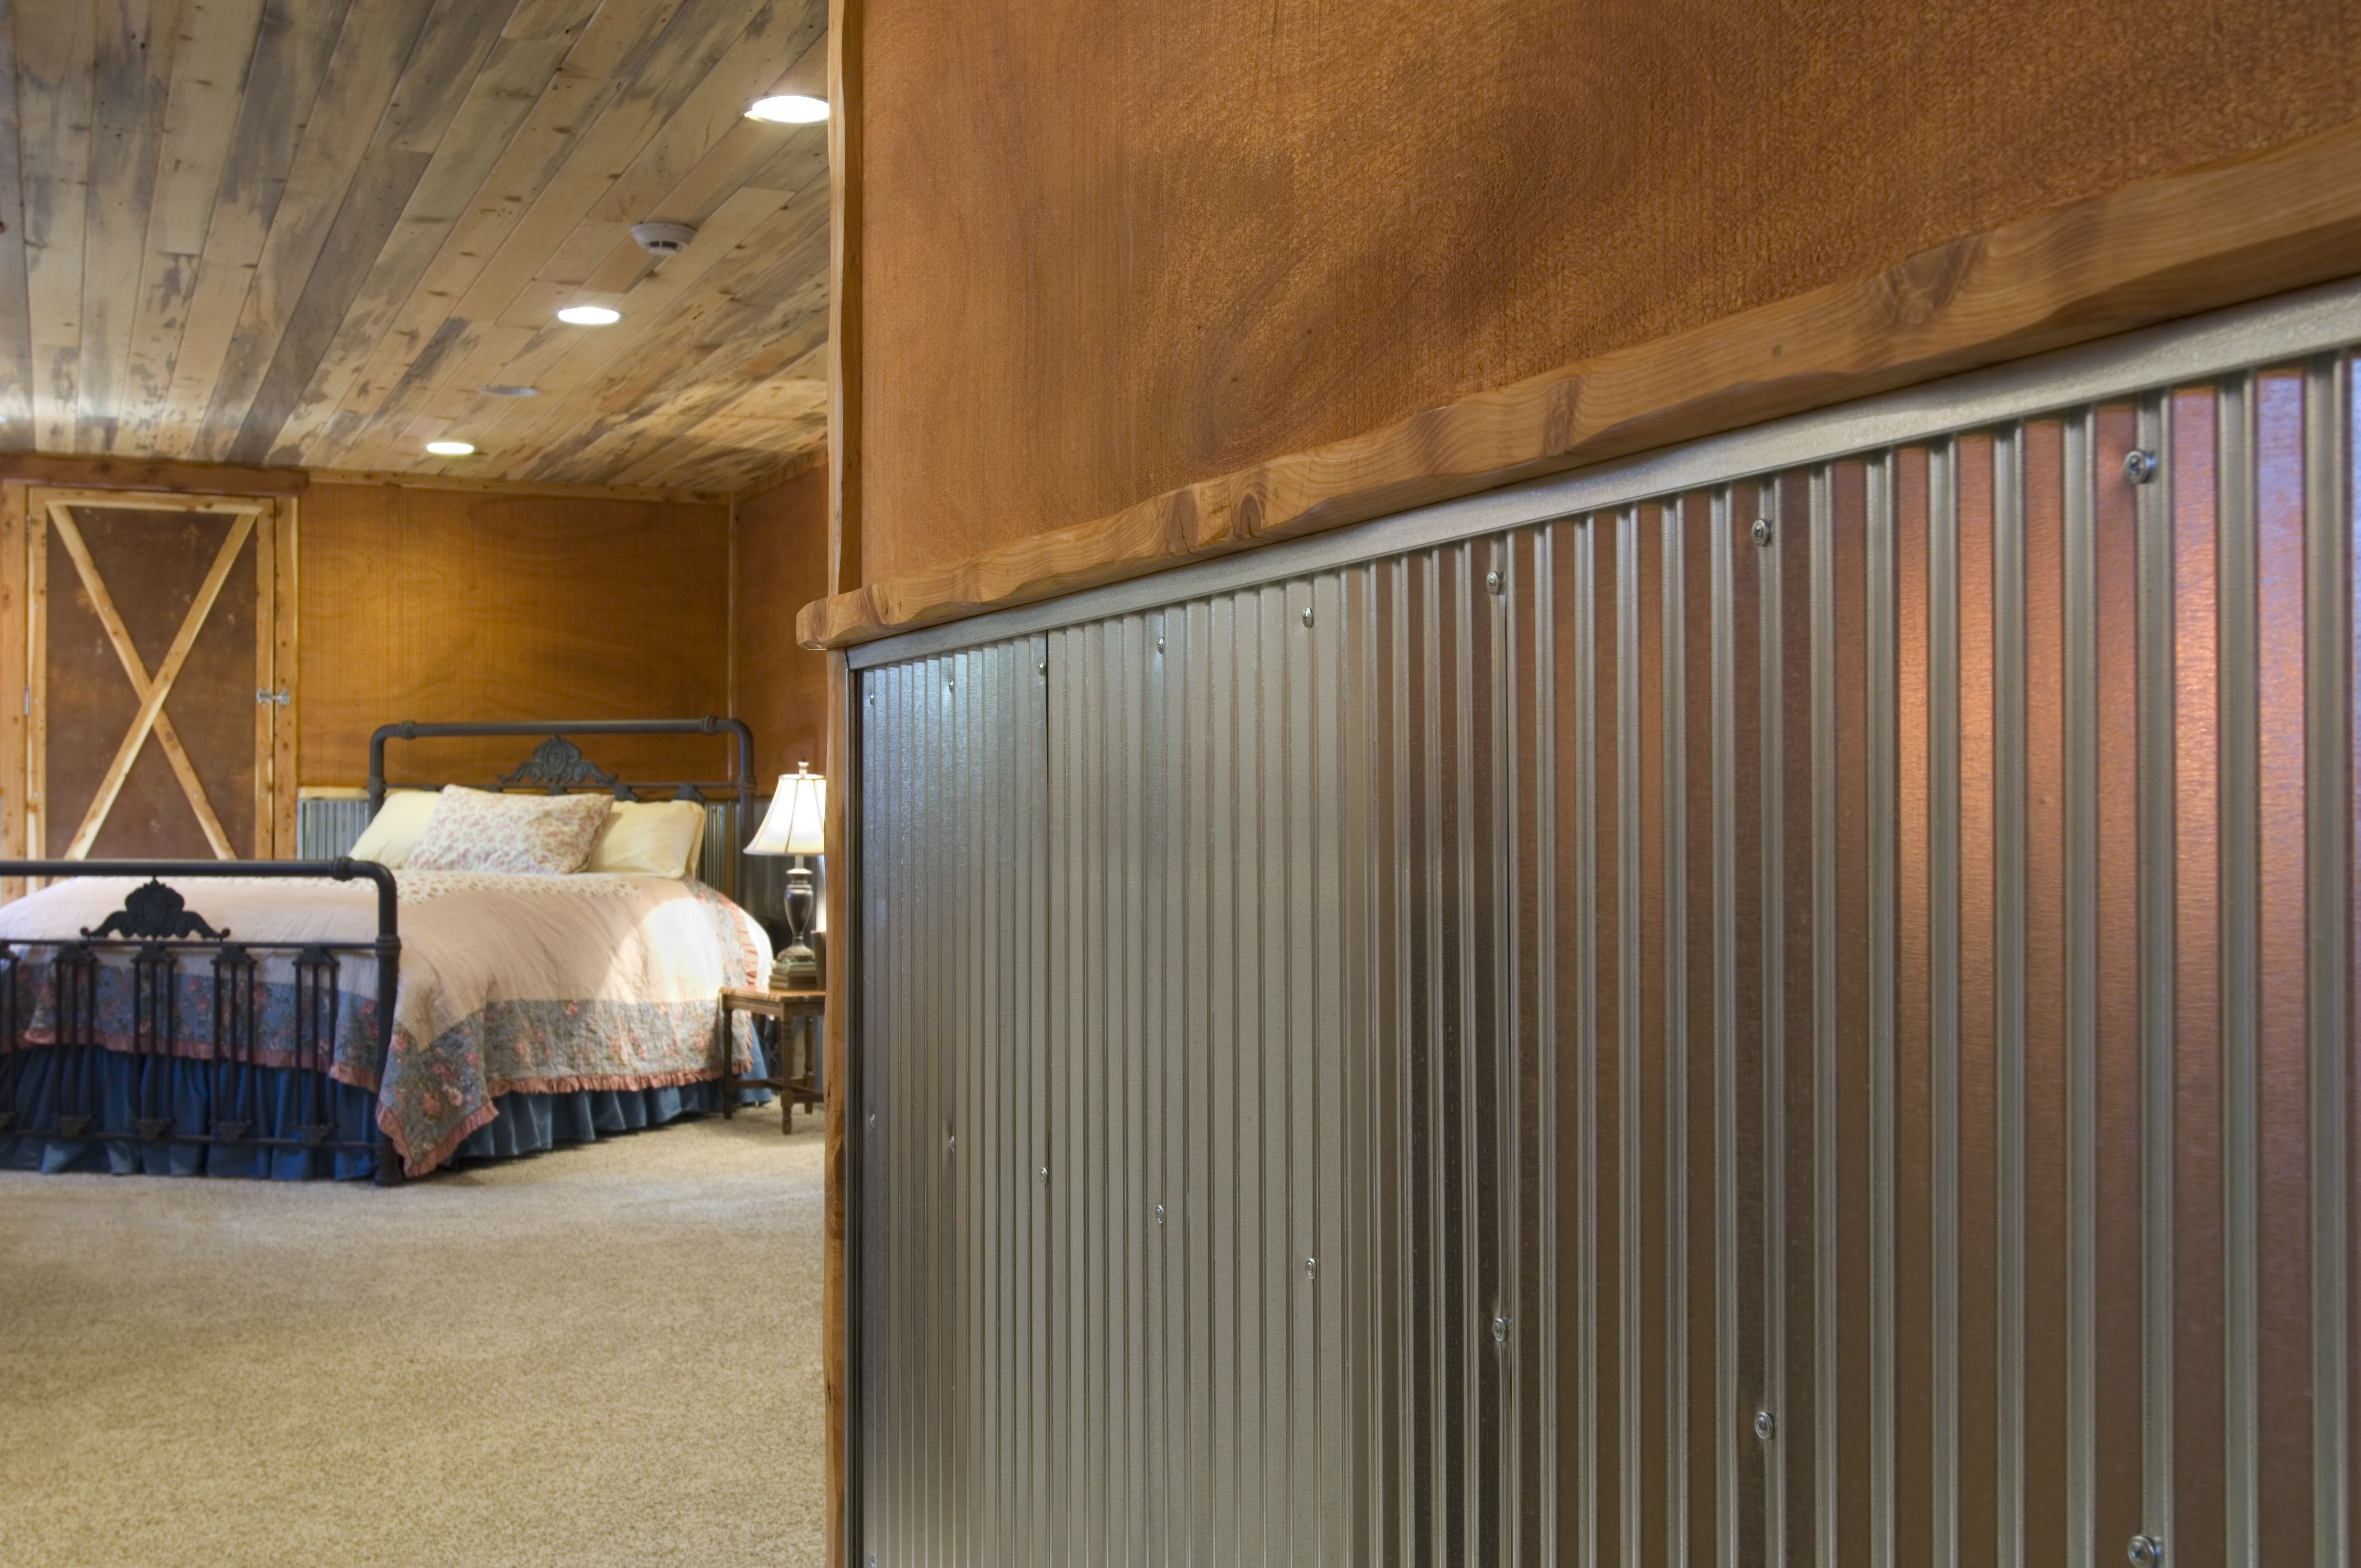 Corrugated Metal Accent Wall Wainscoting Styles Corrugated Metal Wall Wainscoting Panels